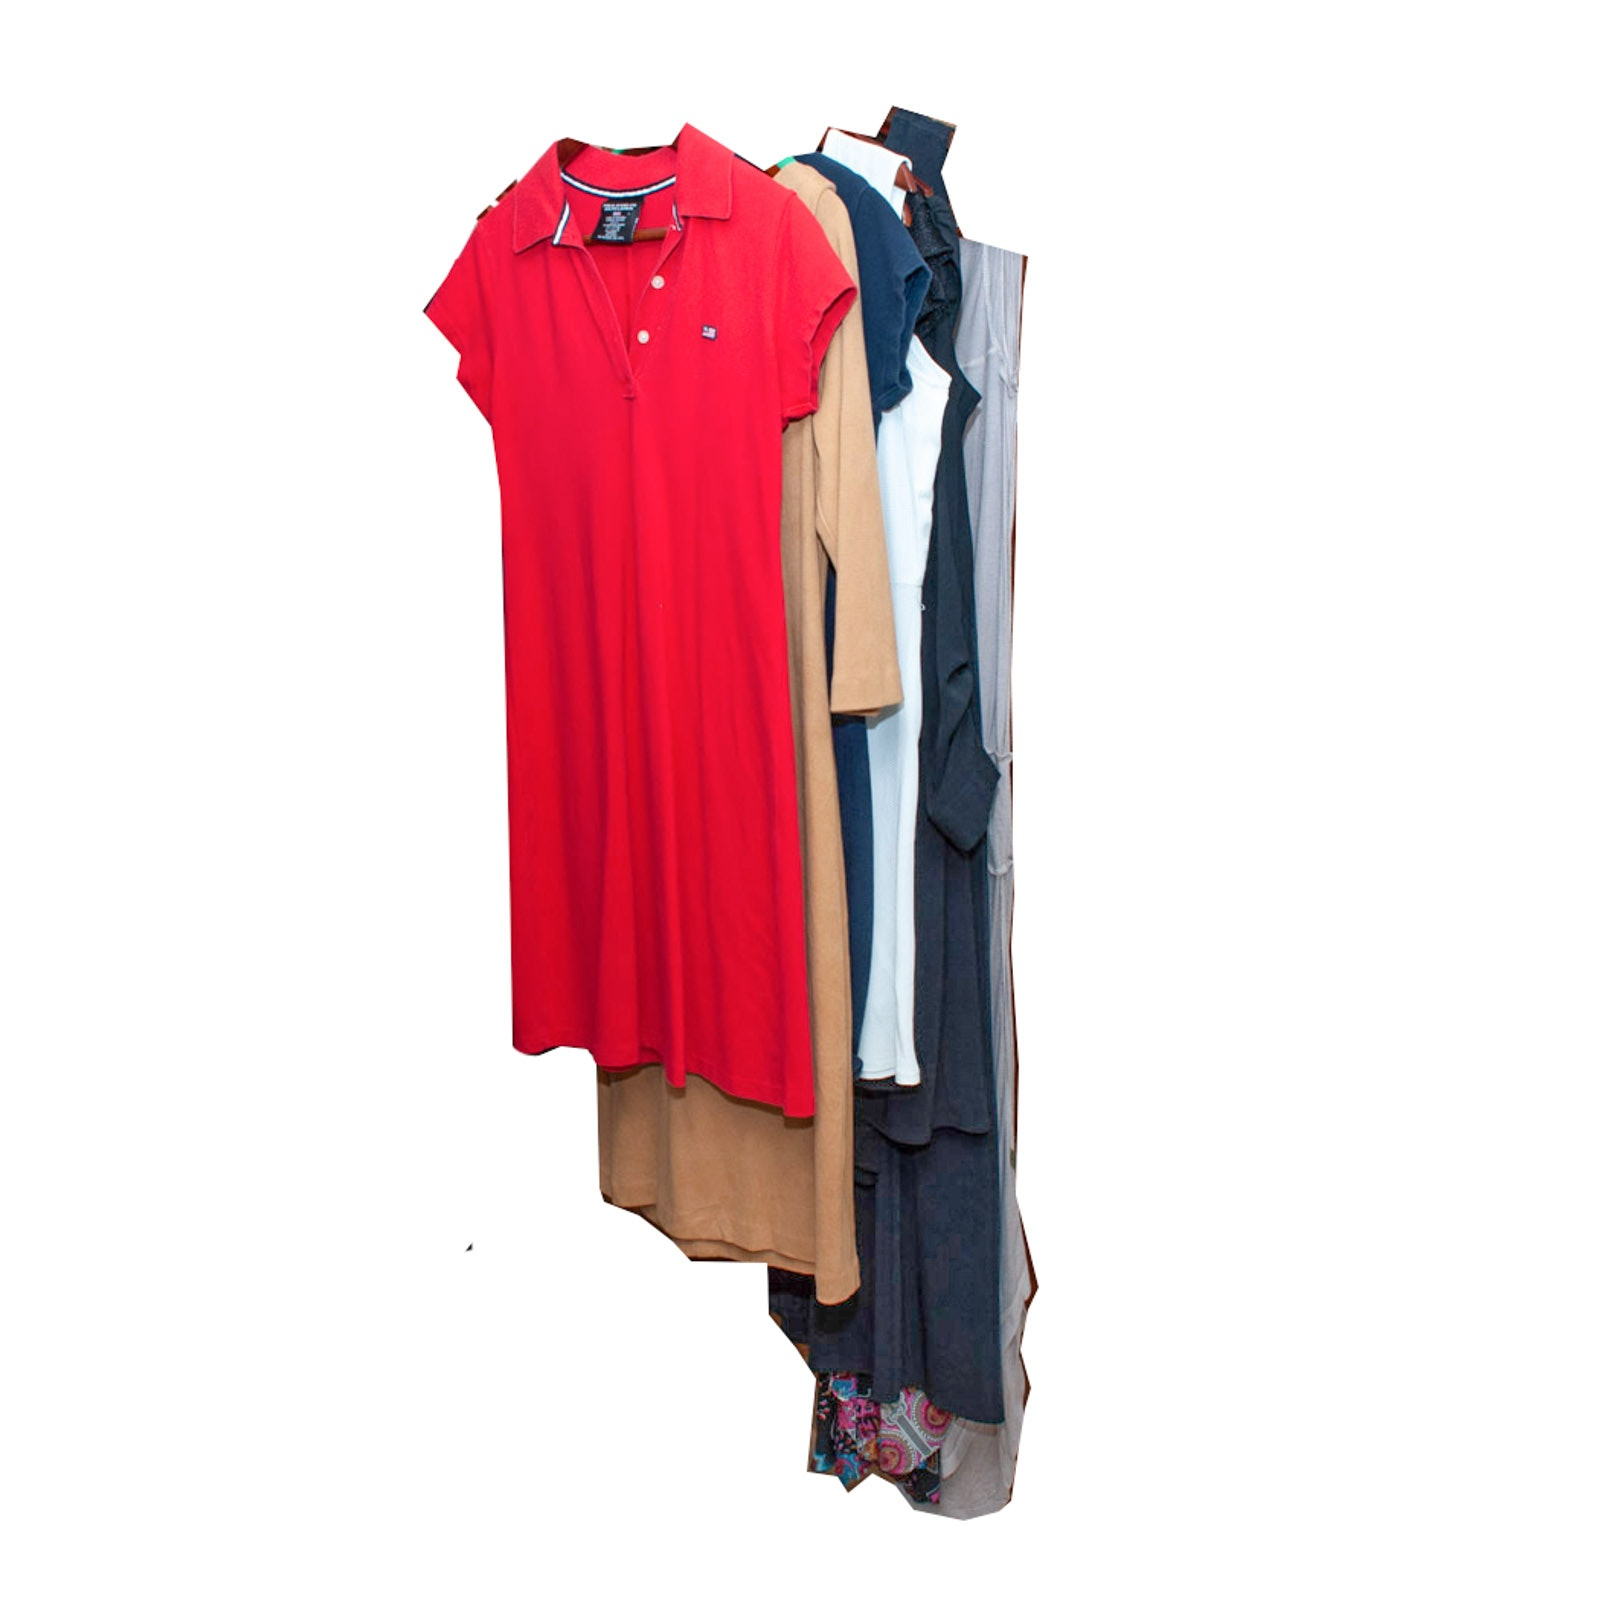 Women's Casual Dresses Including Ralph Lauren and Allen Schwartz